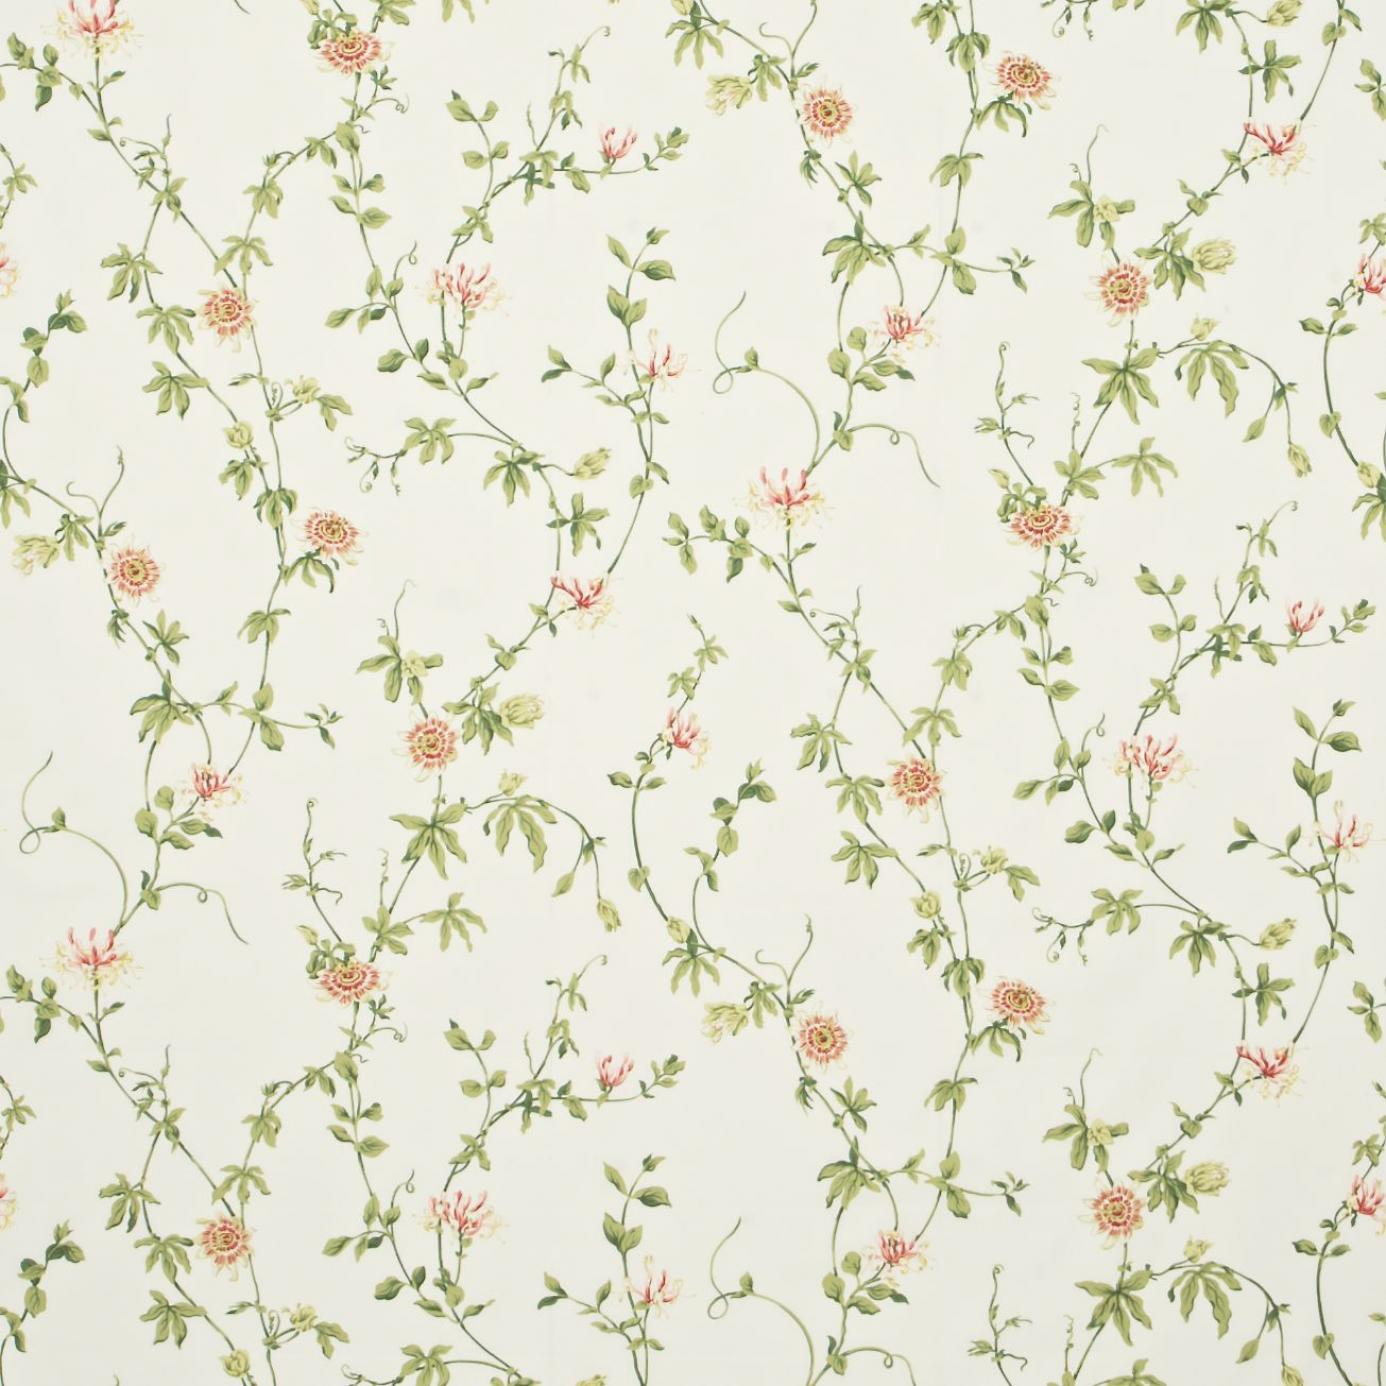 Passion Flower Fabric Ivory Pink Dpempf202 Sanderson